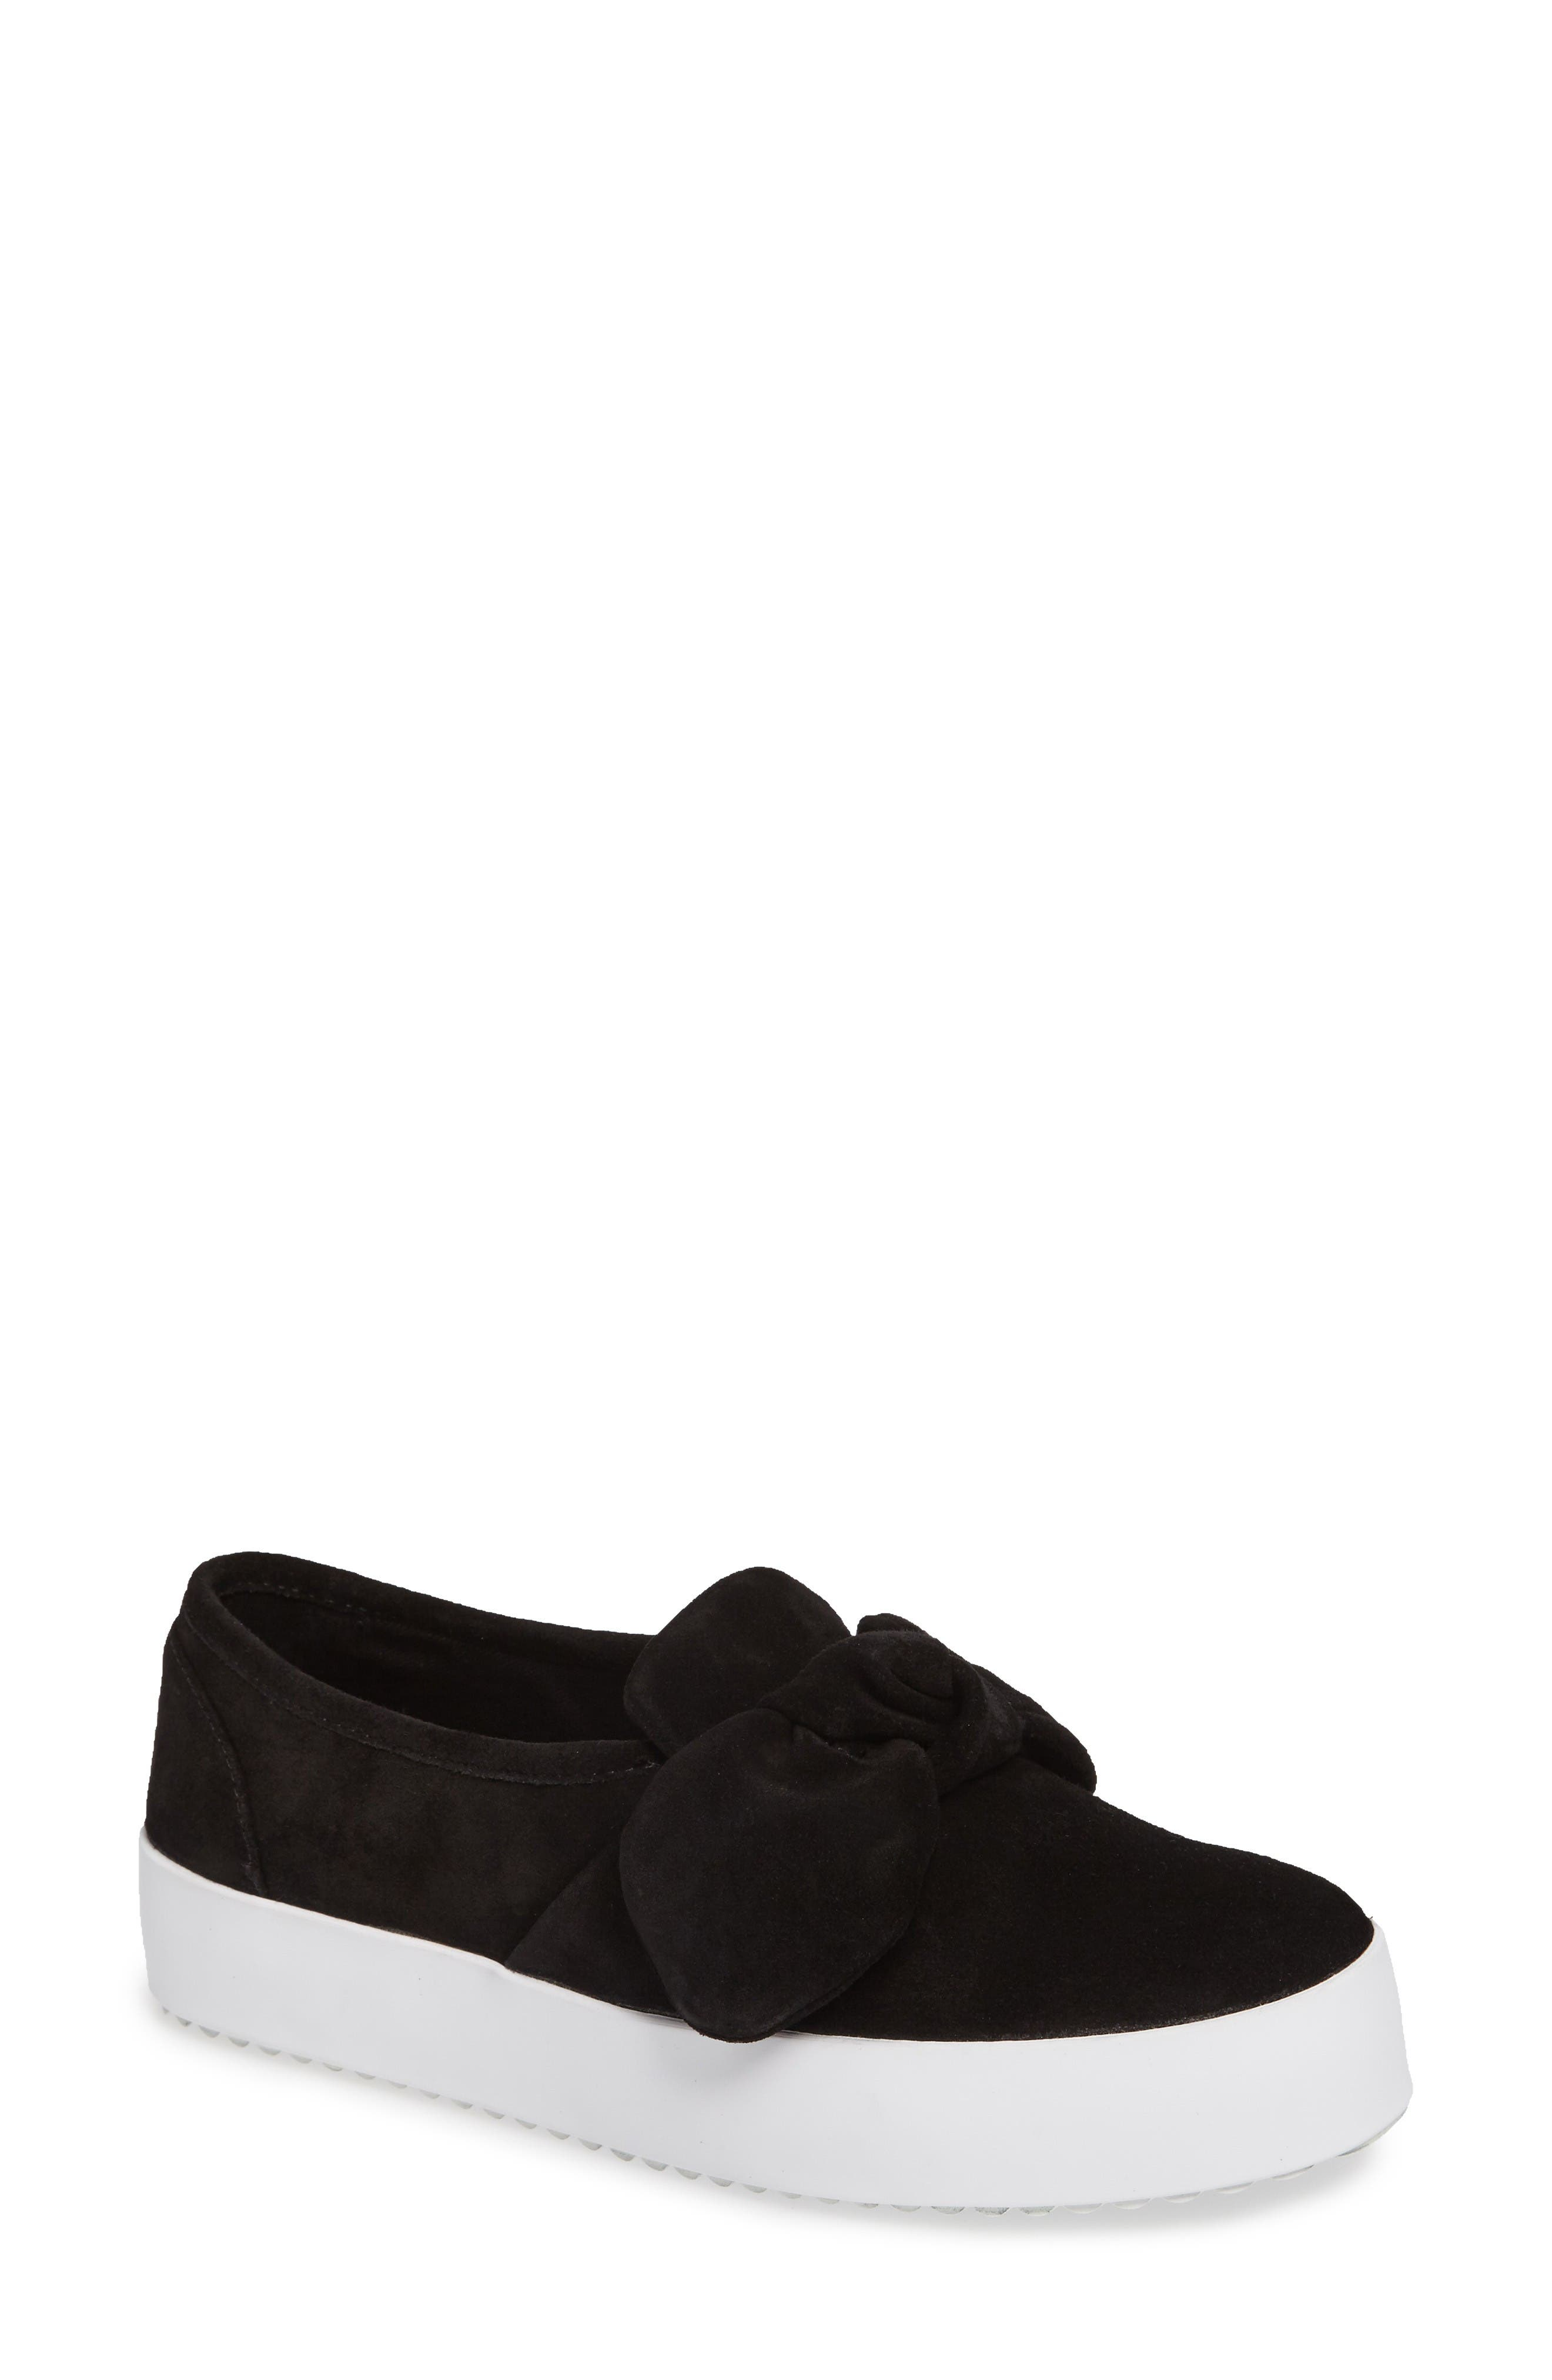 Stacey Bow Platform Sneaker,                             Main thumbnail 1, color,                             Black Oiled Suede